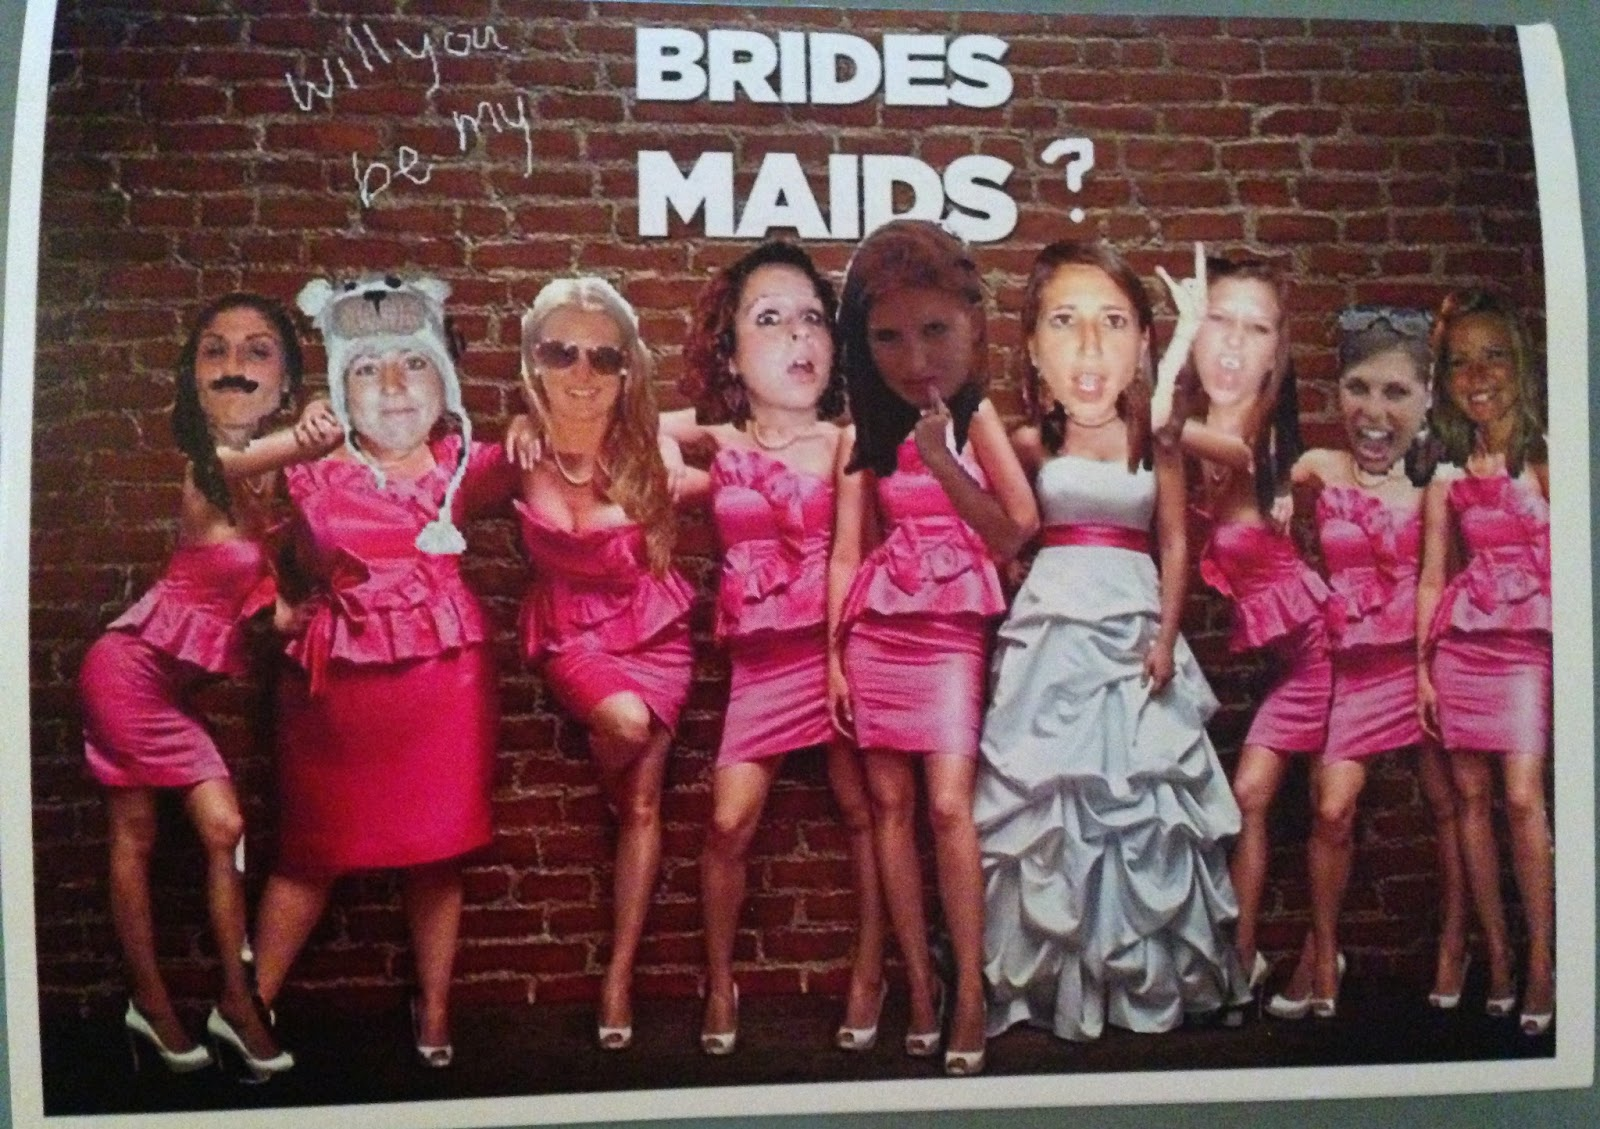 Broke and Bougie Friday 5 Ways to Ask Your Bridesmaids